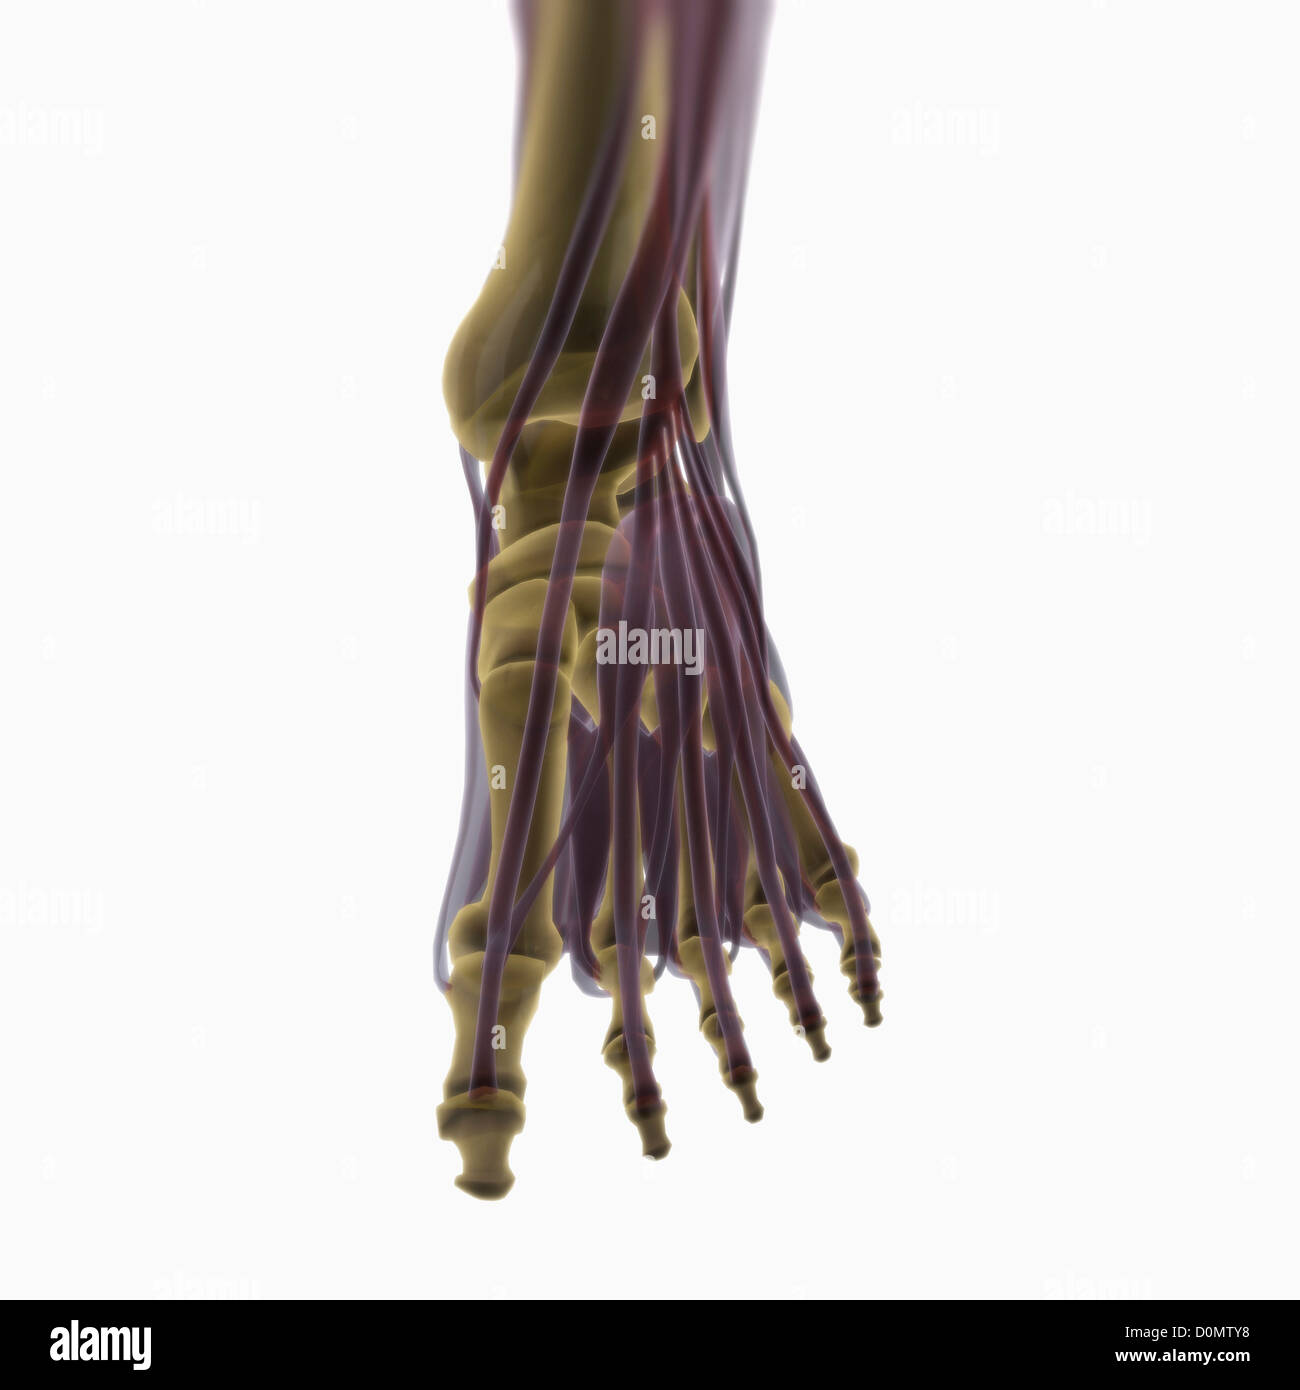 Anatomical Model Showing The Muscles Of The Left Foot Stock Photo